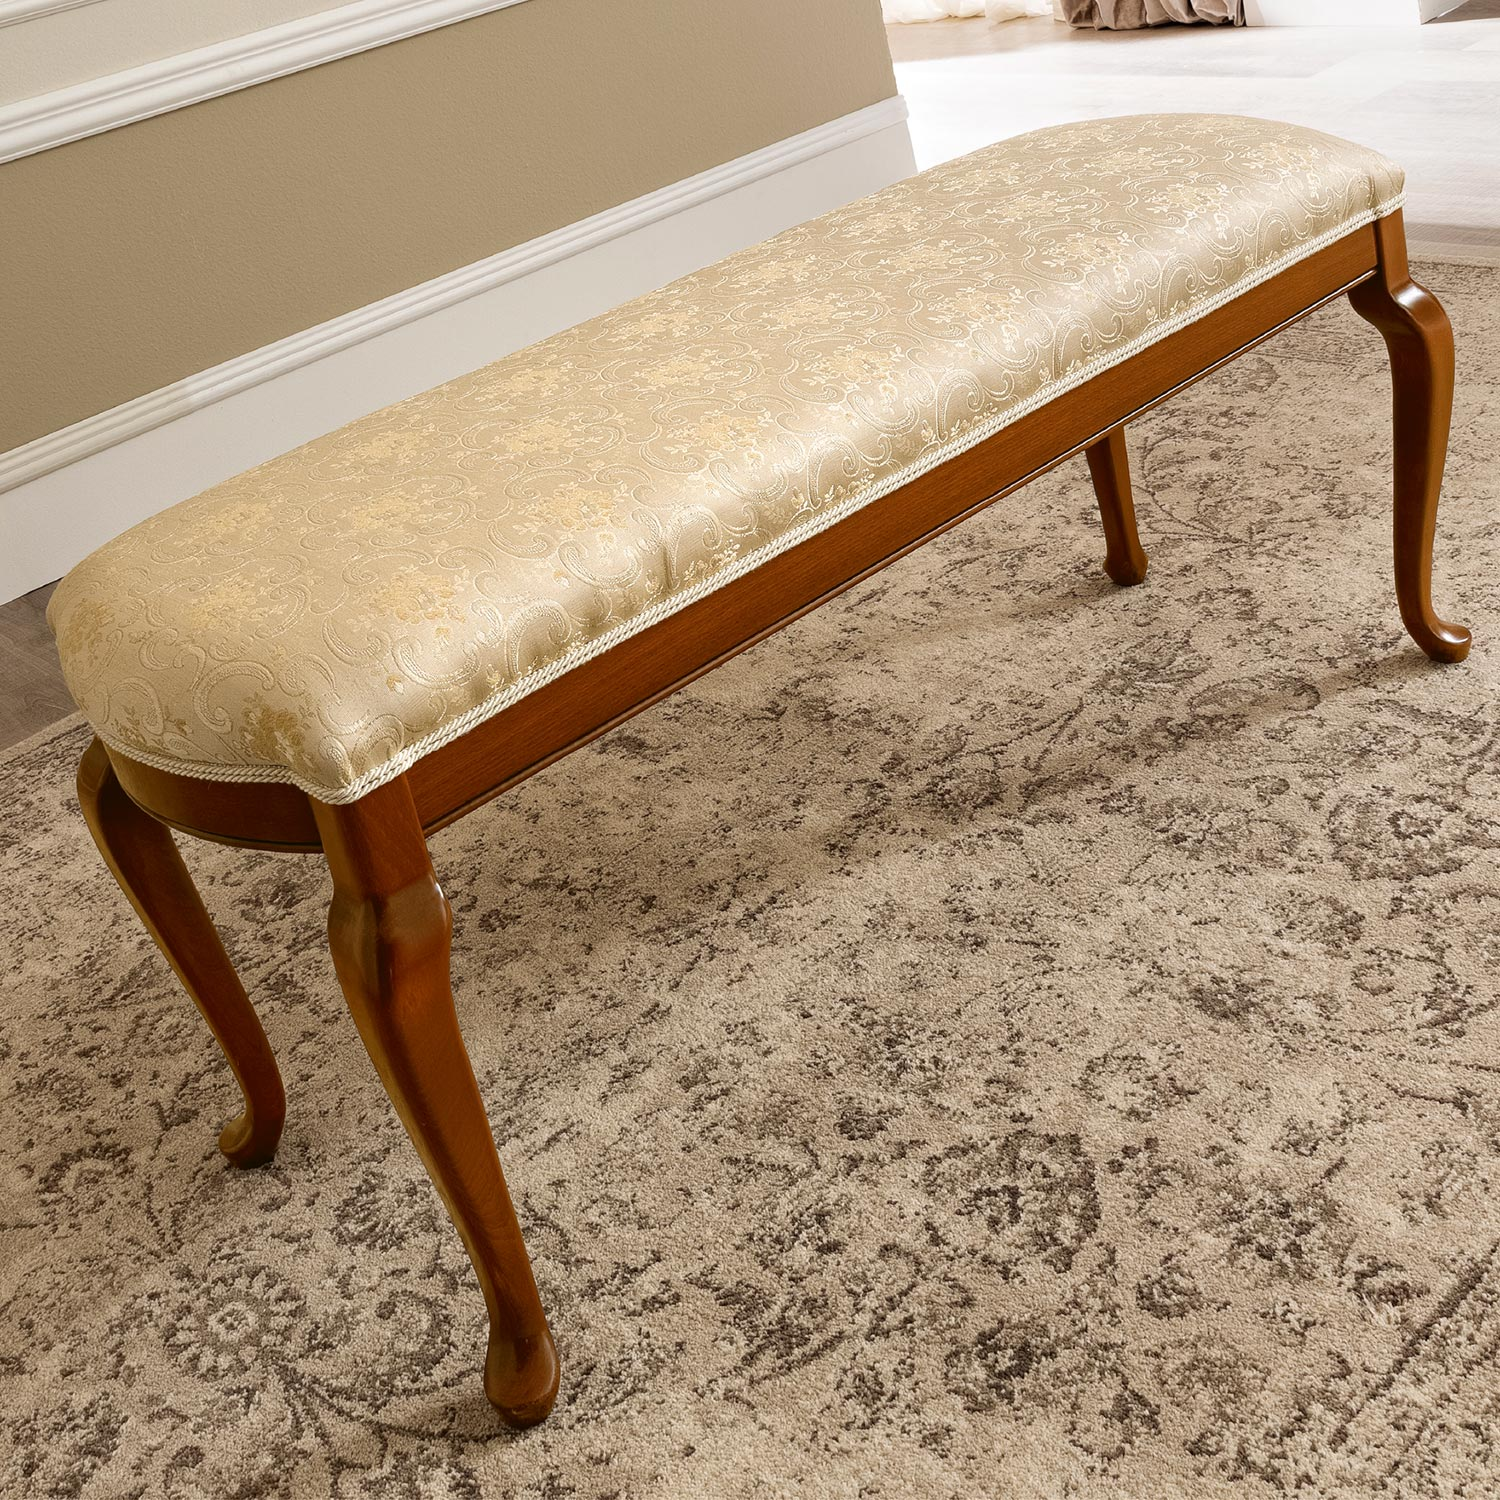 Treviso Cherry Dressing Table Bench